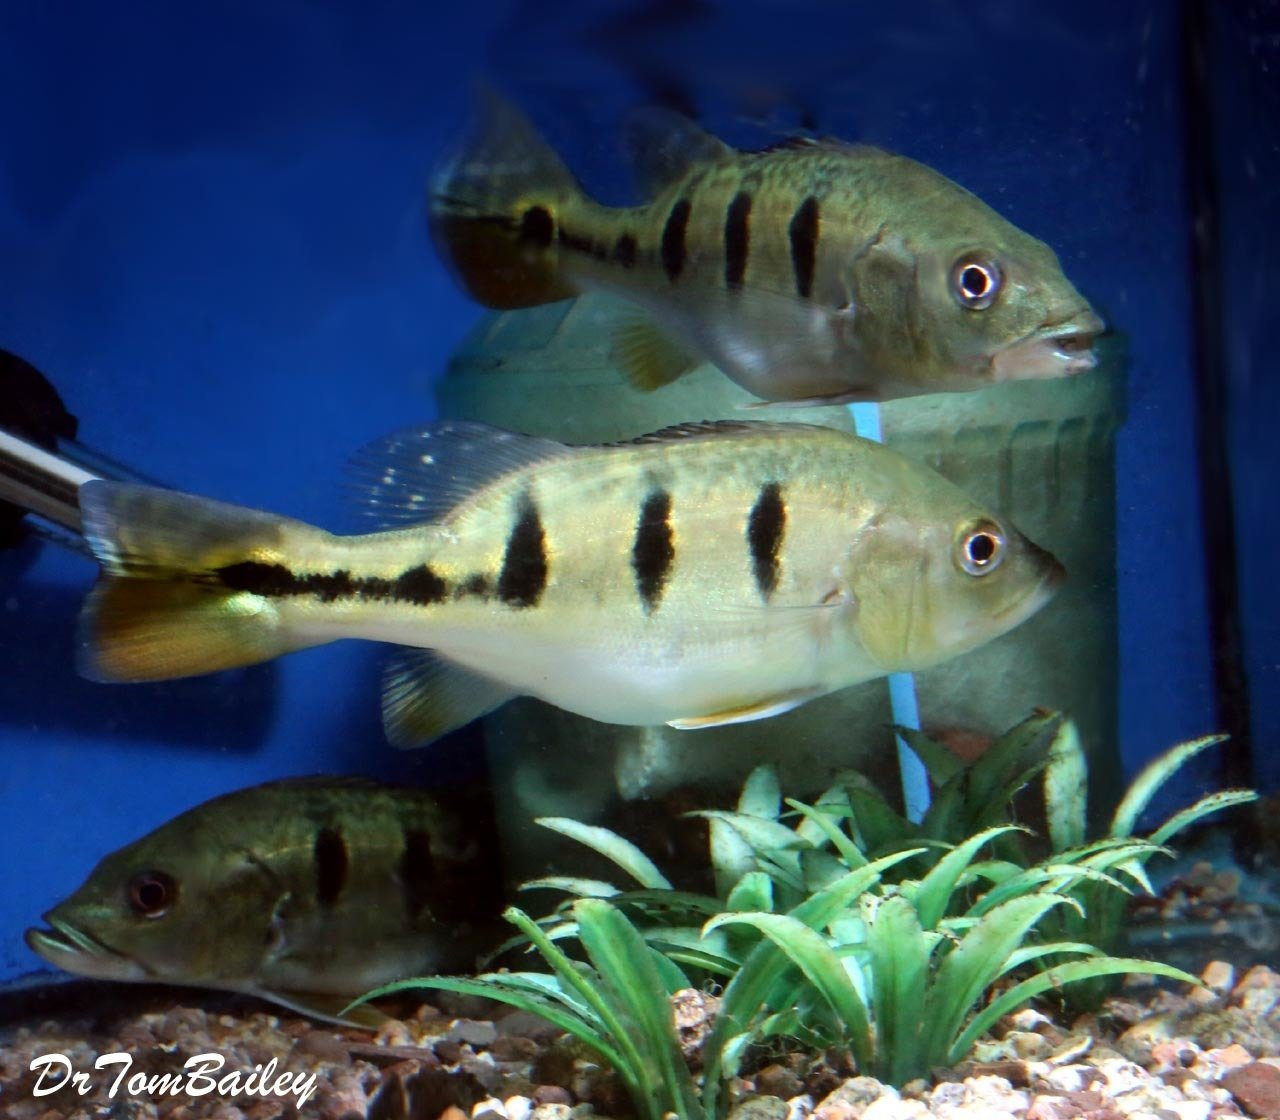 Click on the image to see more photos |Peacock Bass Aquarium